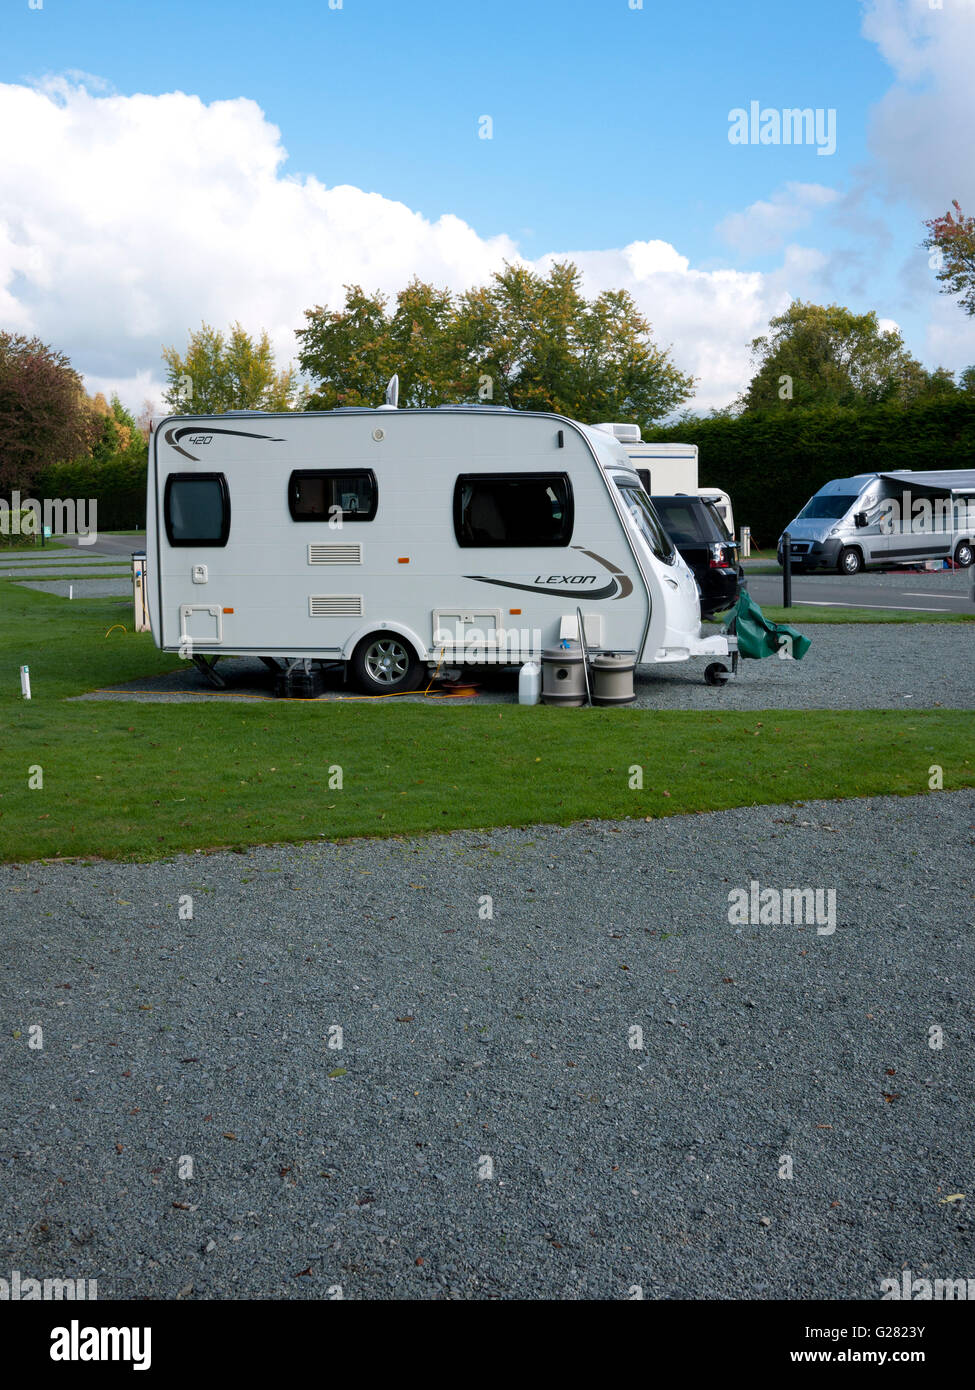 Caravan set up on Welsh campsite, North Wales, UK. - Stock Image